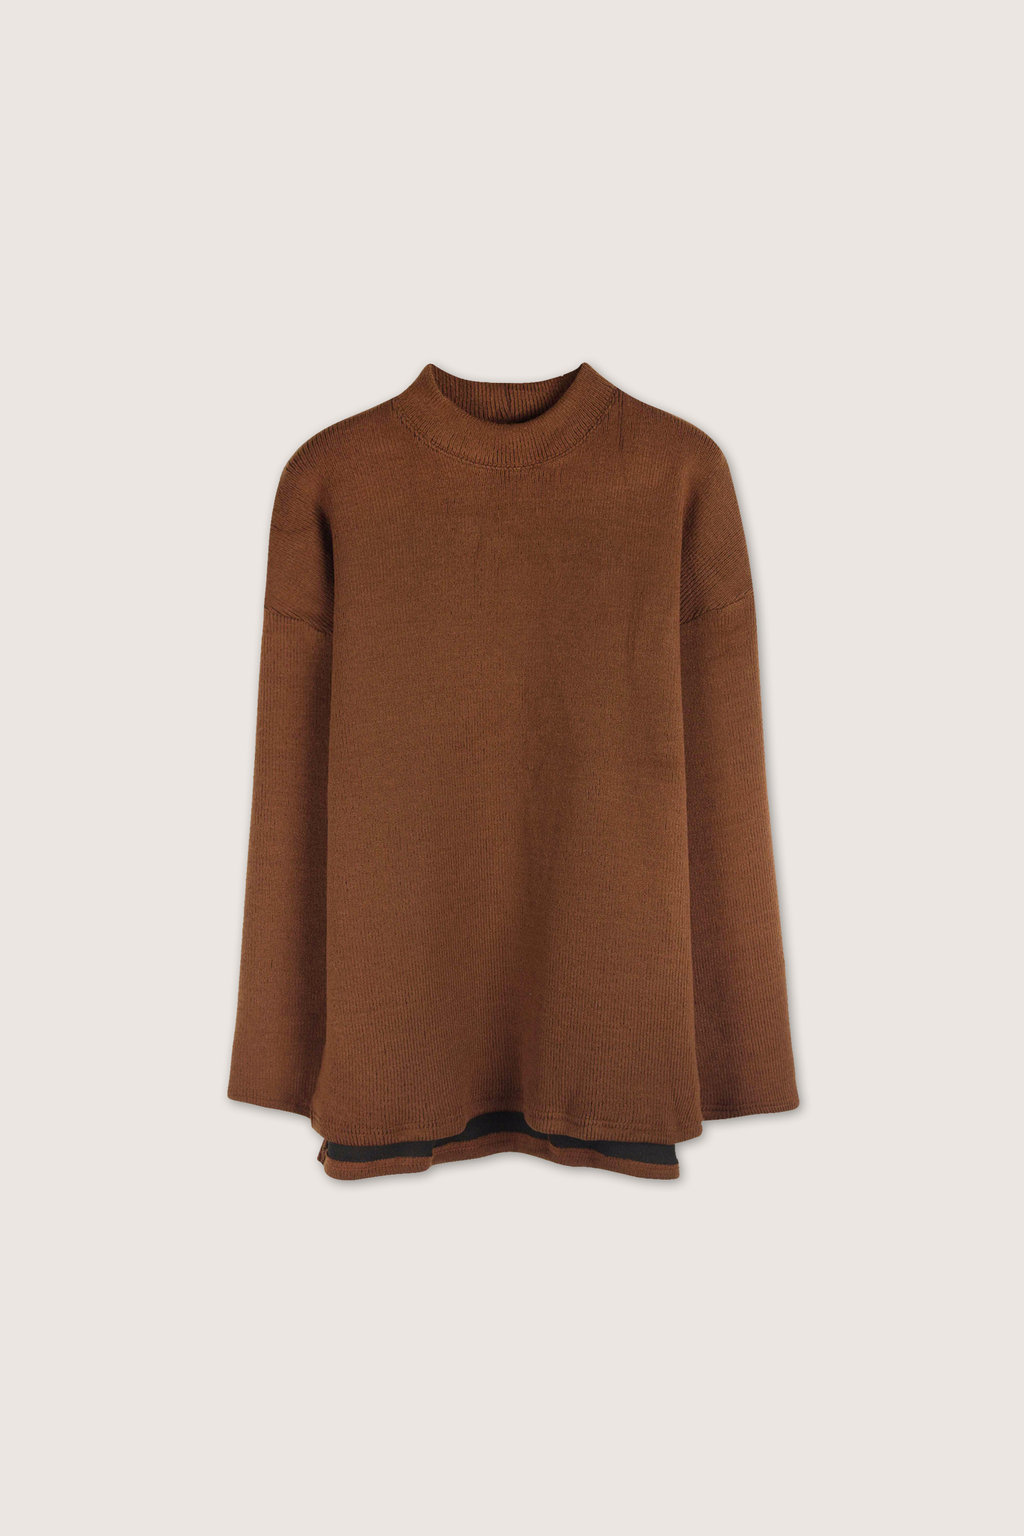 Sweater H002 Brown 10